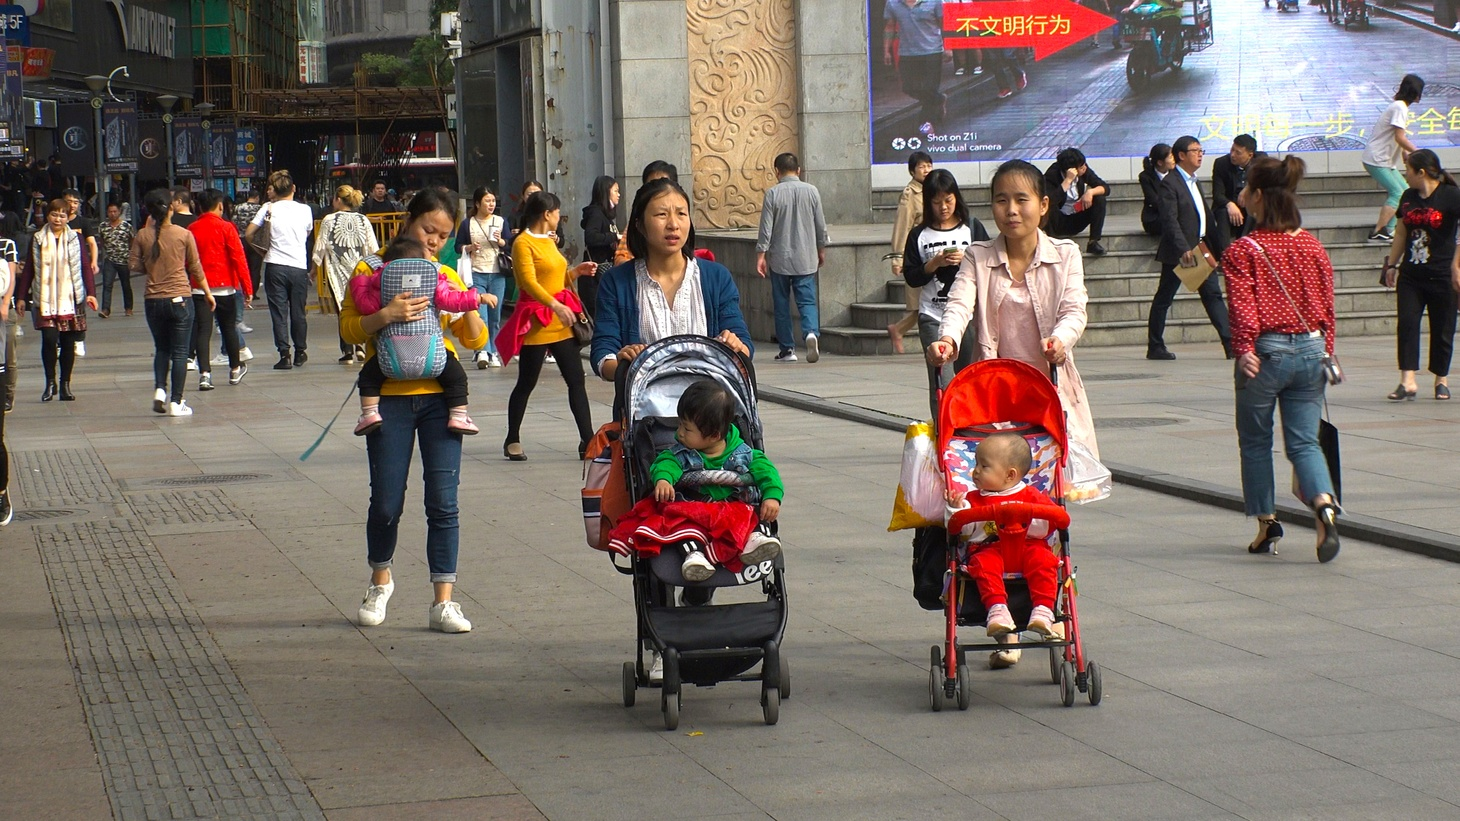 Parents walk with their young children in the Laojie area of China.